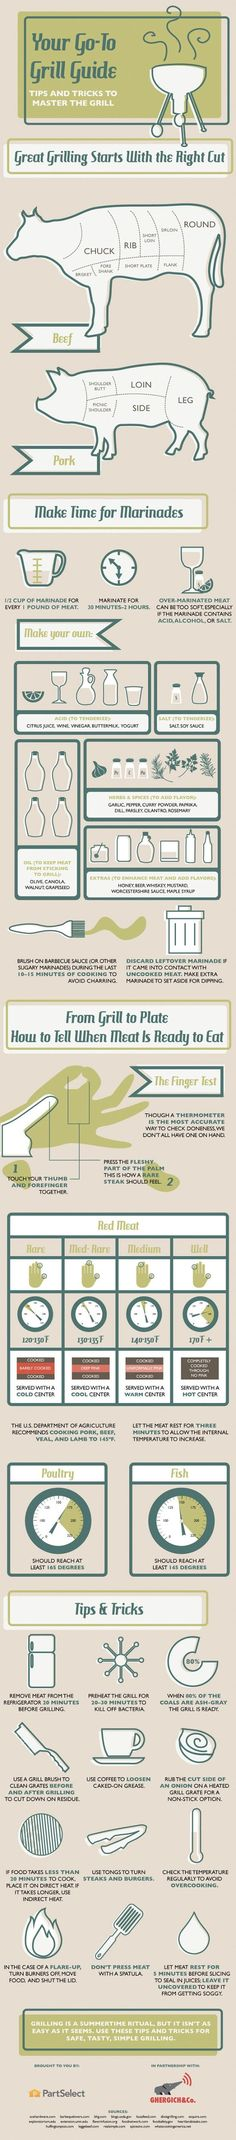 Your Go-to Grill Guide    #infographic #Food #GrillCooking